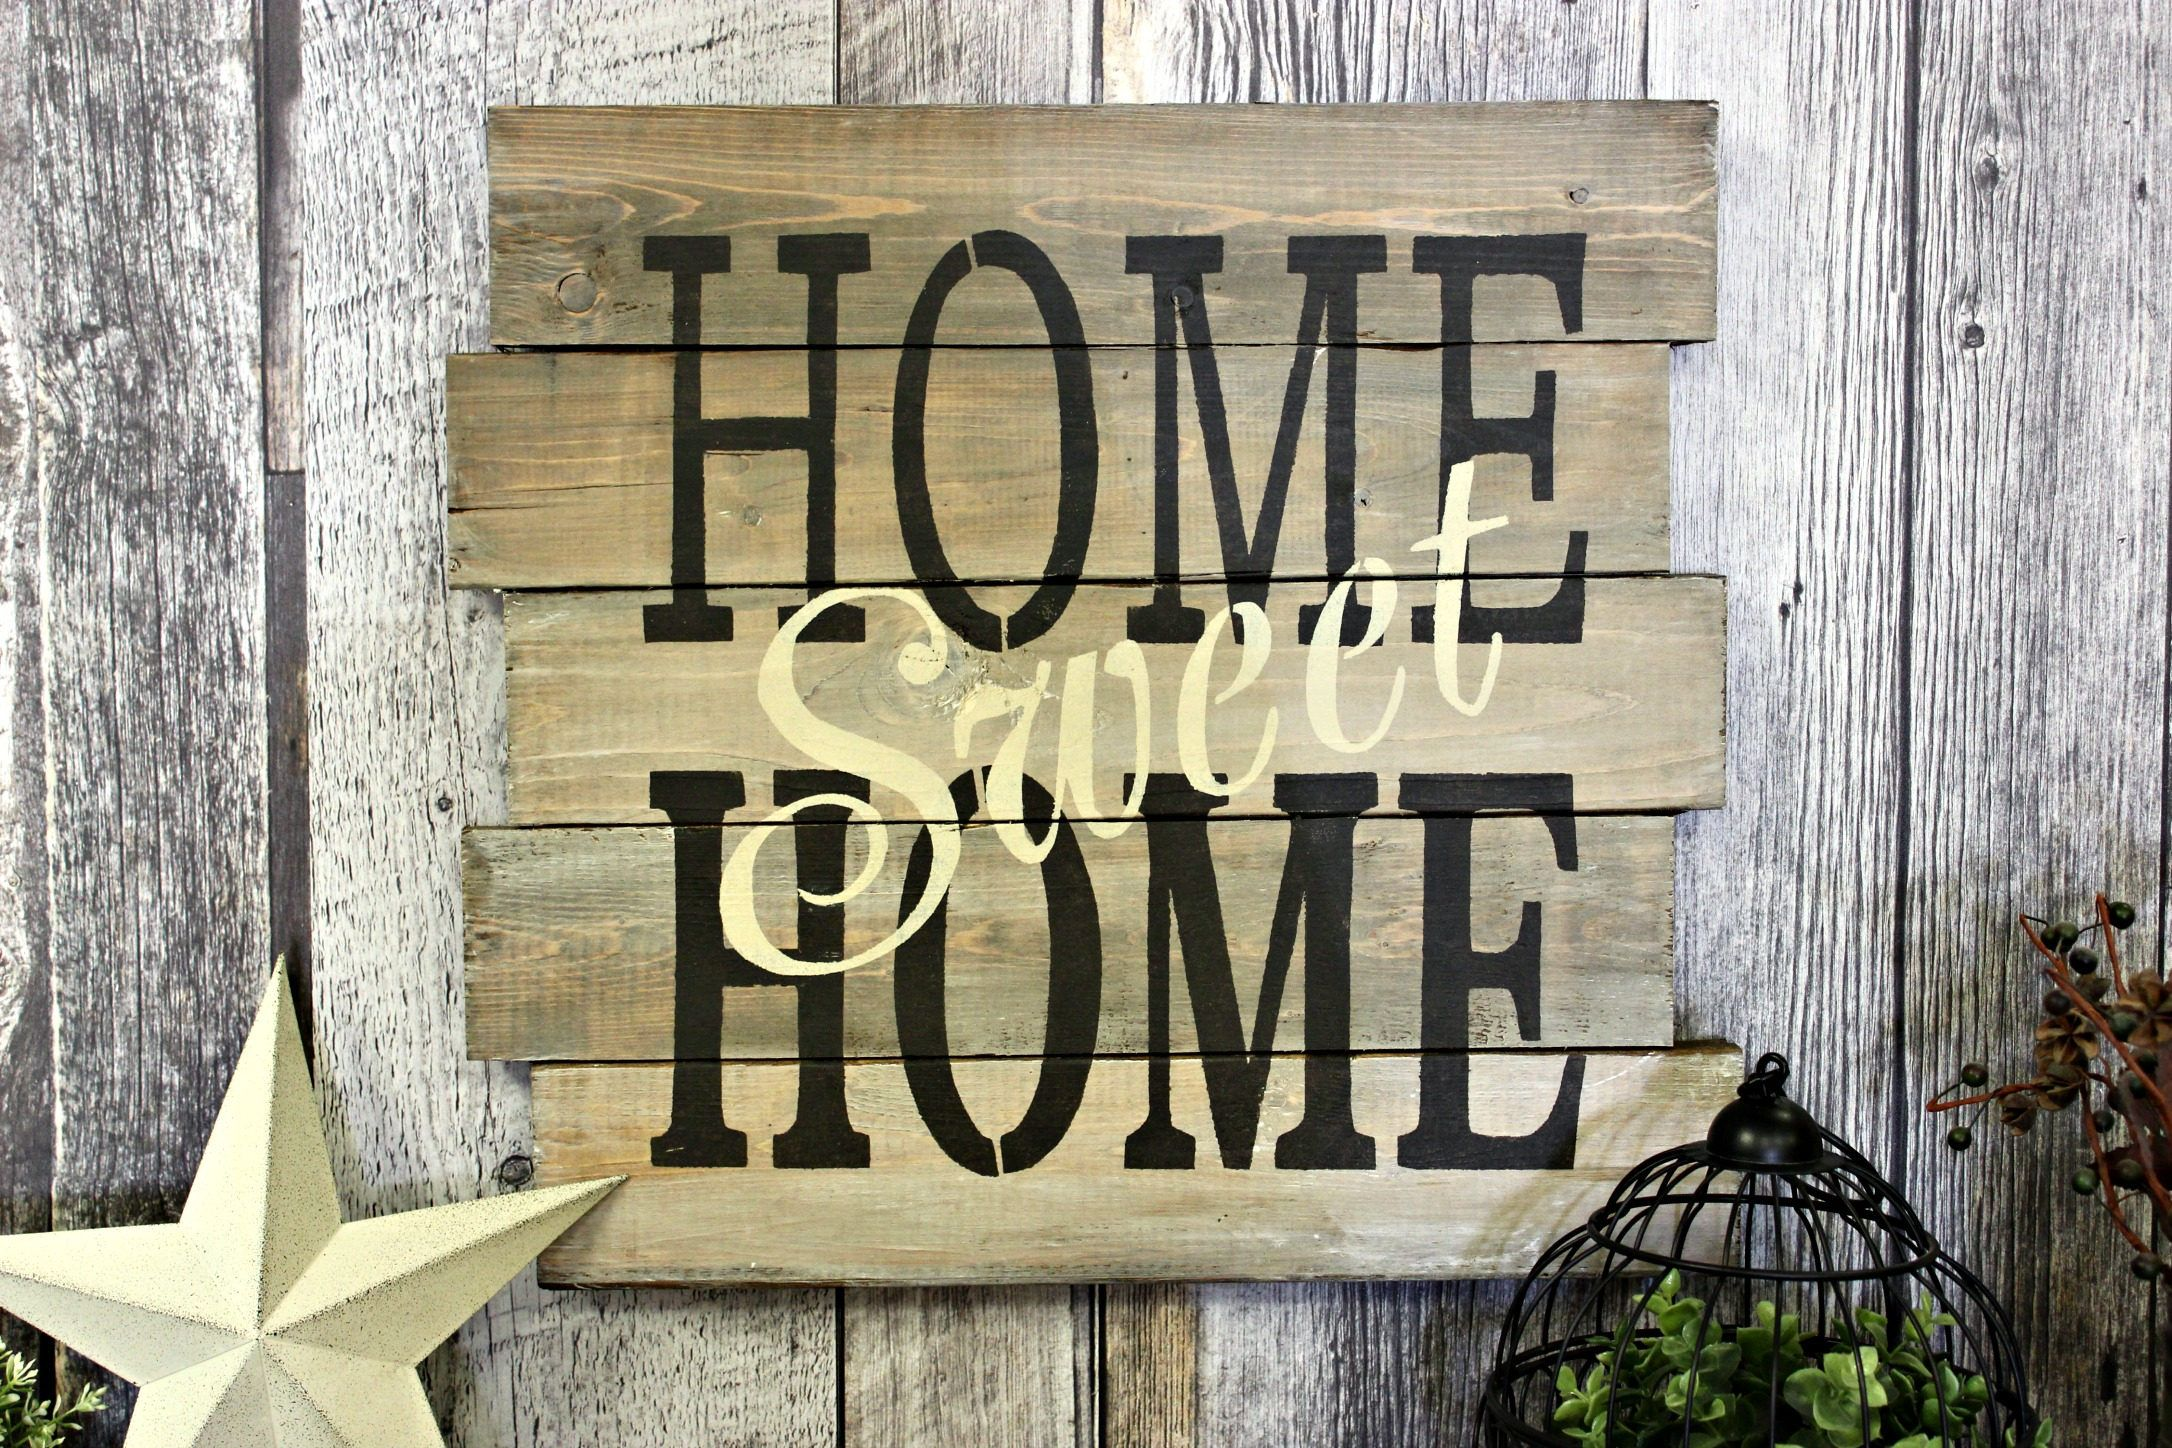 Country Decor Wood Signs Glamorous Home Sweet Homerustic Decorwood Signcountry Decor Design Ideas